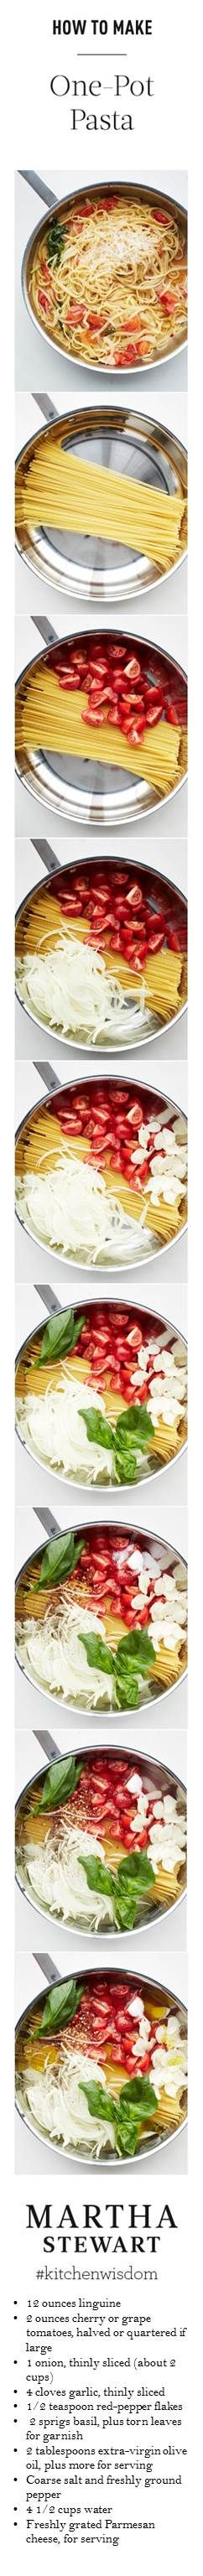 Mix  pasta, tomatoes, onion, garlic, red-pepper flakes, basil, oil, 2 tsp. salt, ¼ tsp. pepper,+water in large straight-sided skillet. Bring to boil over high heat. Boil mix, stirring+turning pasta frequently with tongs, til pasta is al dente+water has nearly evaporated, about 9 min. Season to taste divide among 4 bowls,+garnish with basil. Serve with oil+Parmesan.